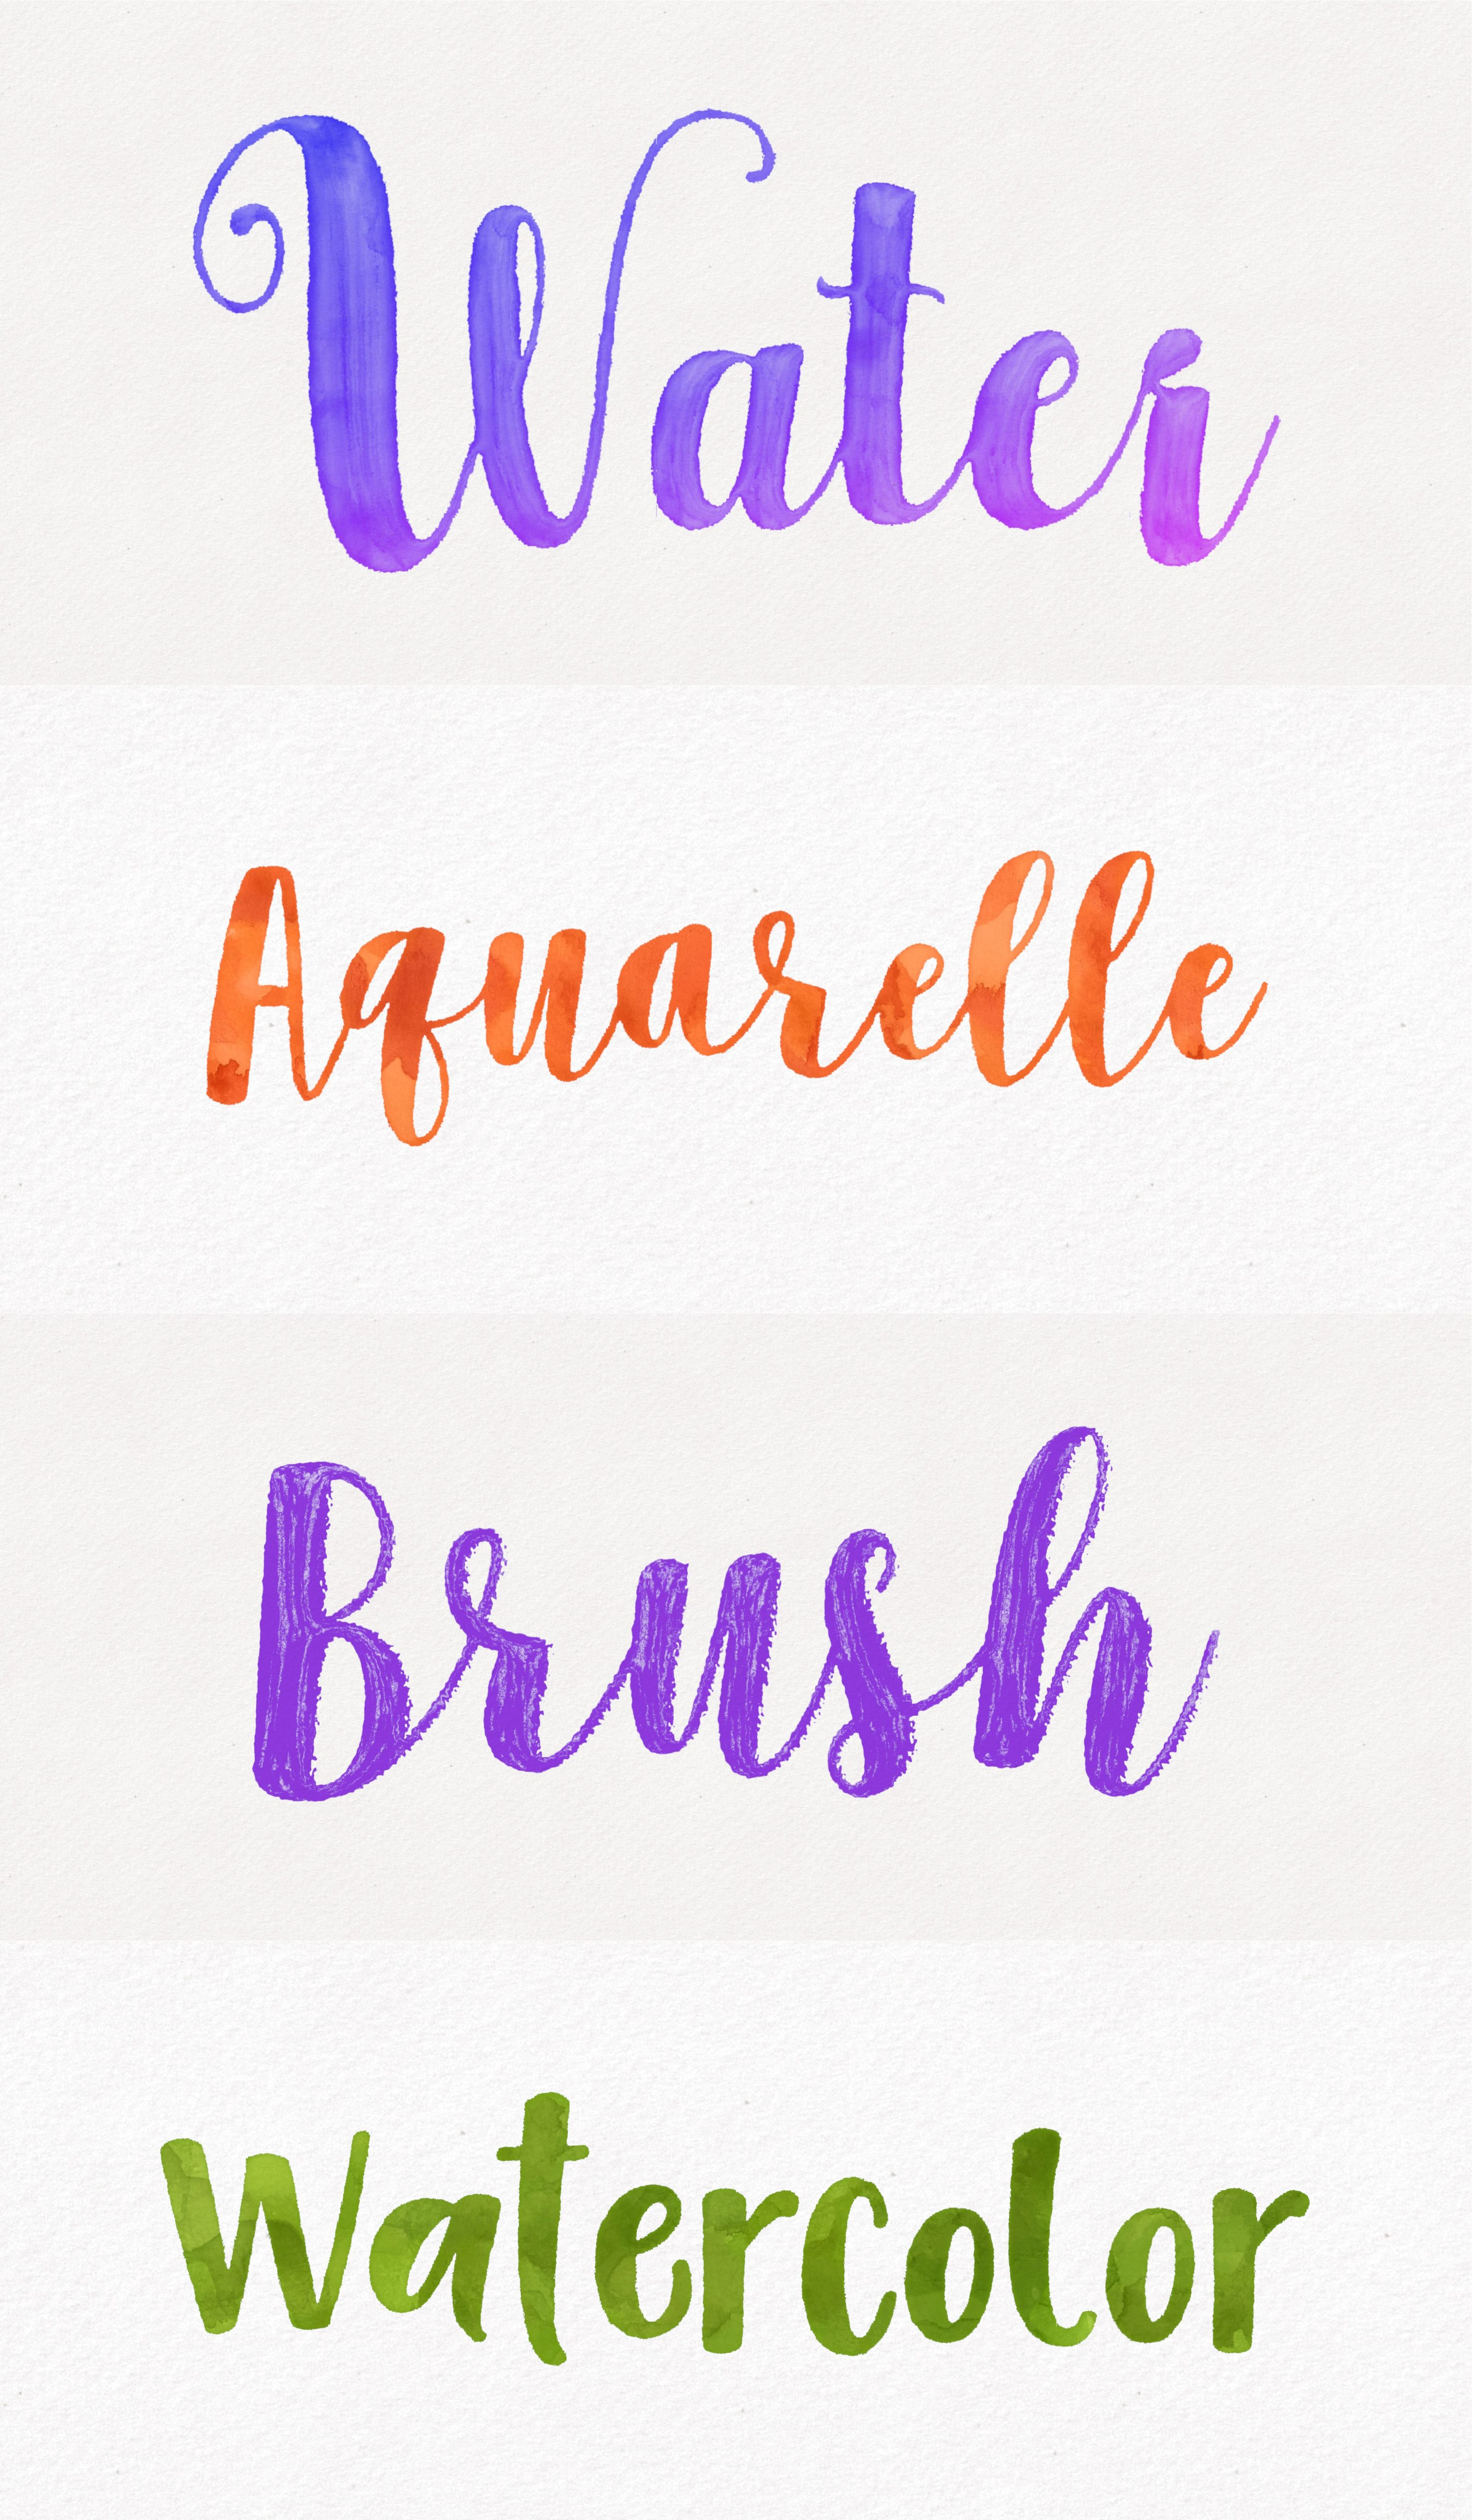 Create Amazing Aquarelle Effects With Arttext Or Letters